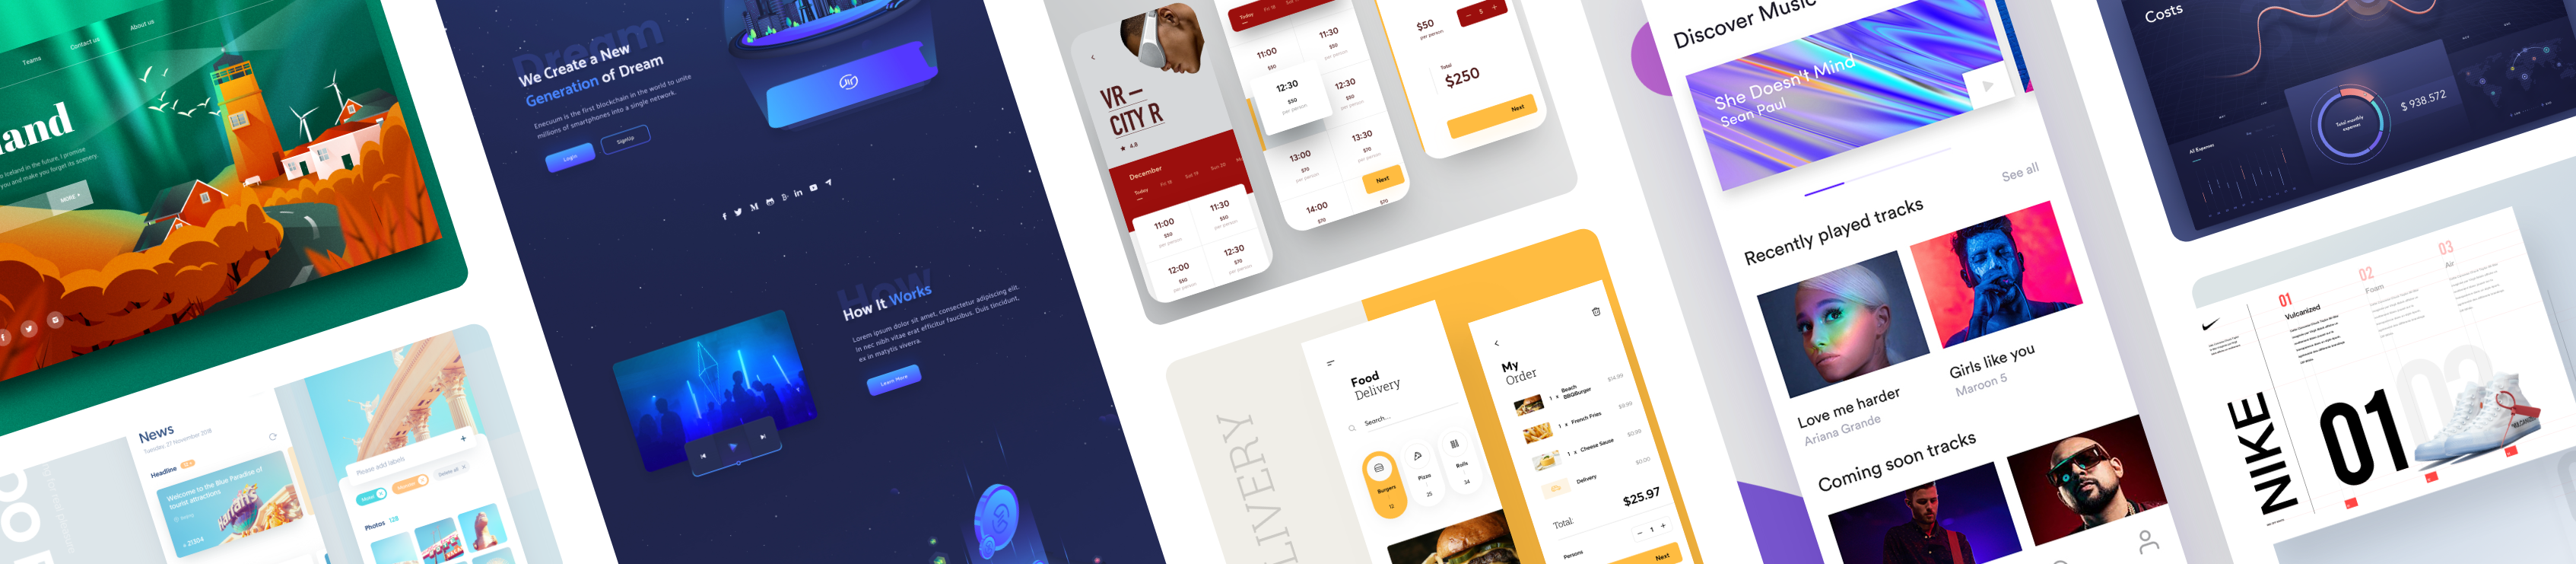 UIUX Interaction Design 24